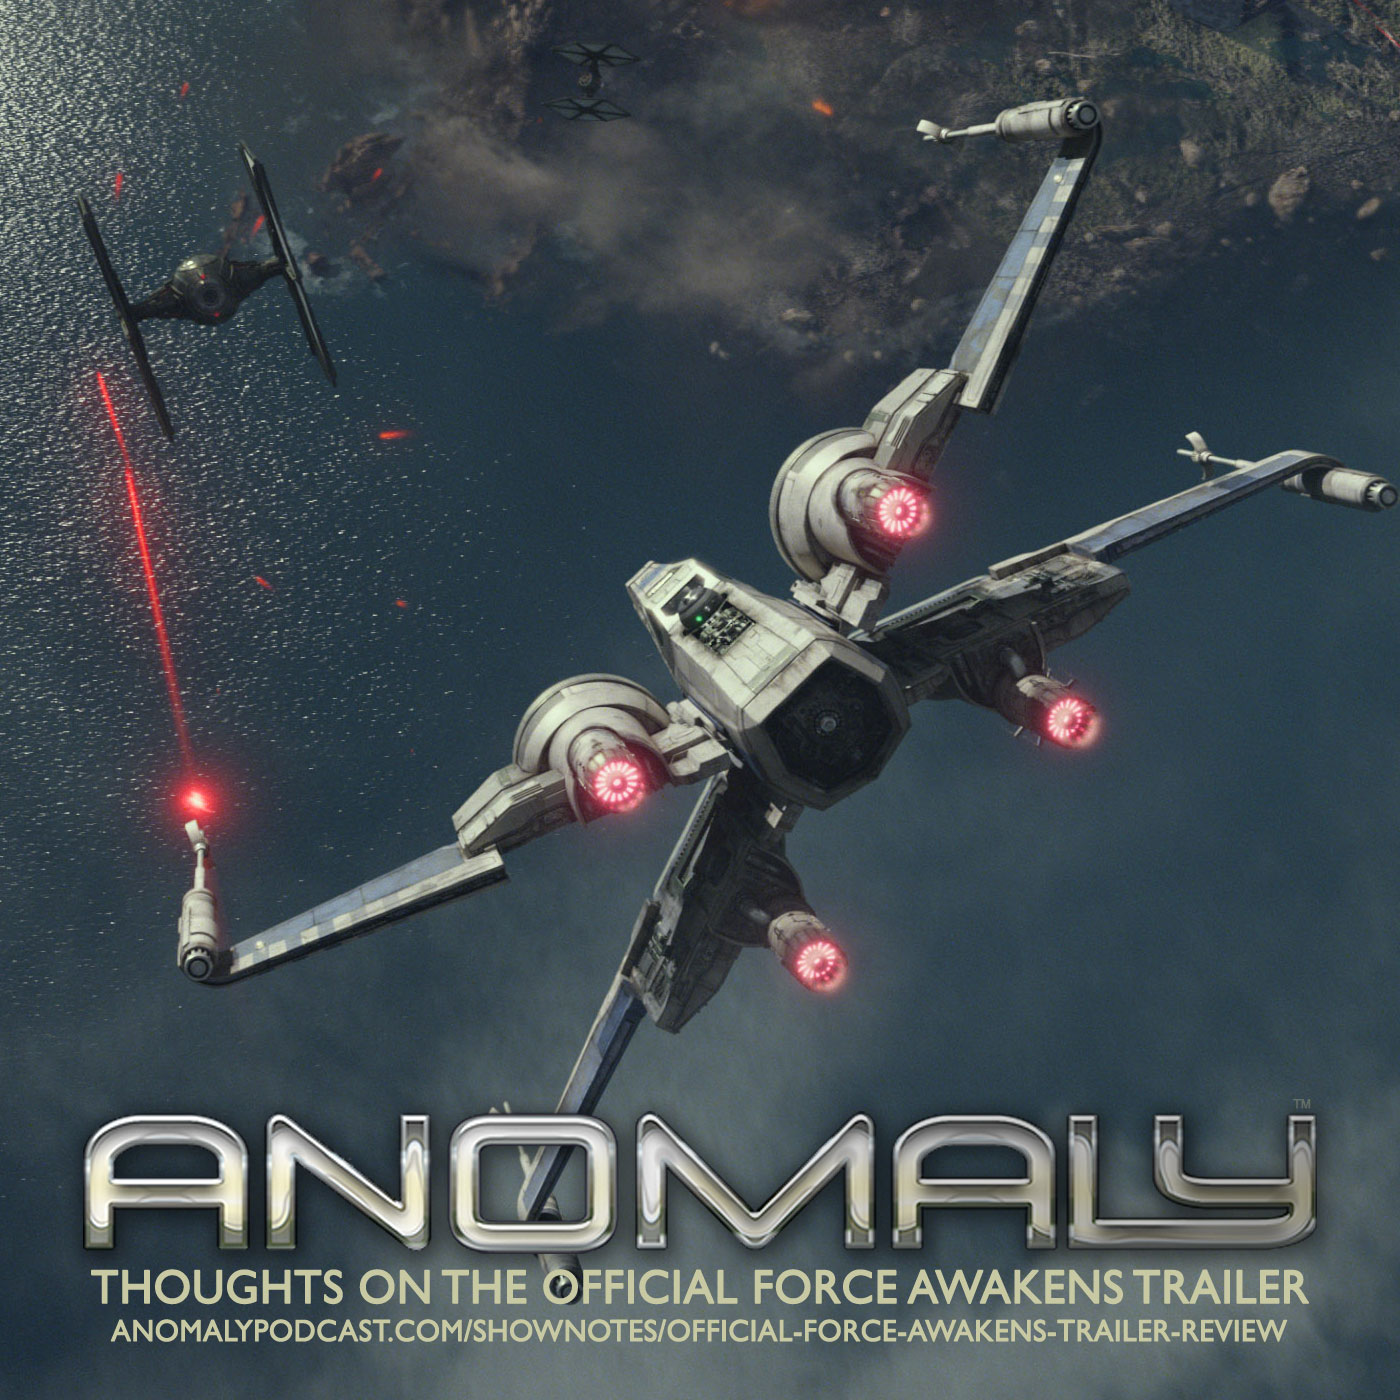 Anomaly | It's Get'n Real: The Force Awakens Official Trailer